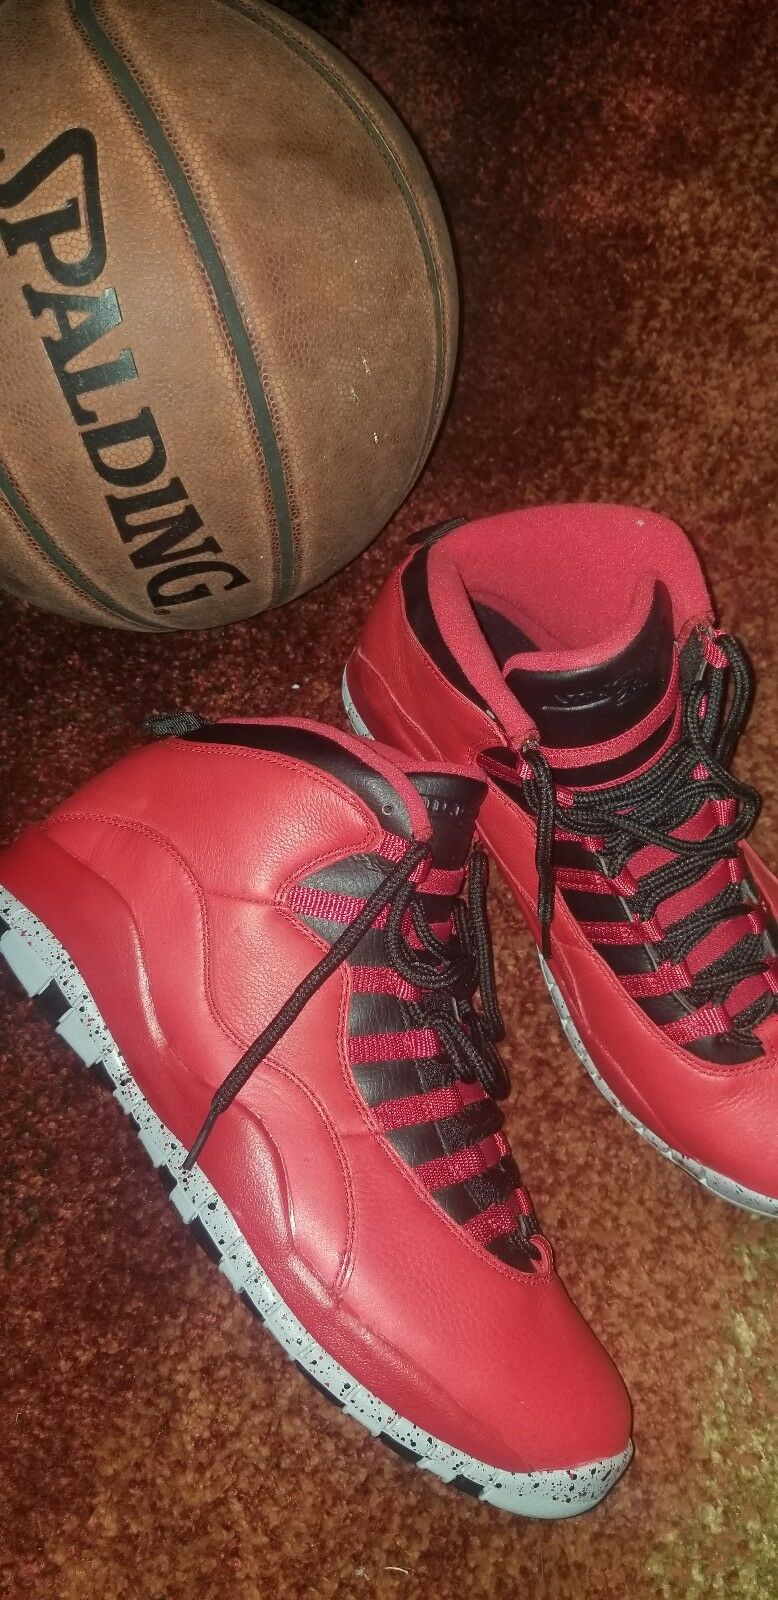 Autentico nike air jordan 10 '30 - 12